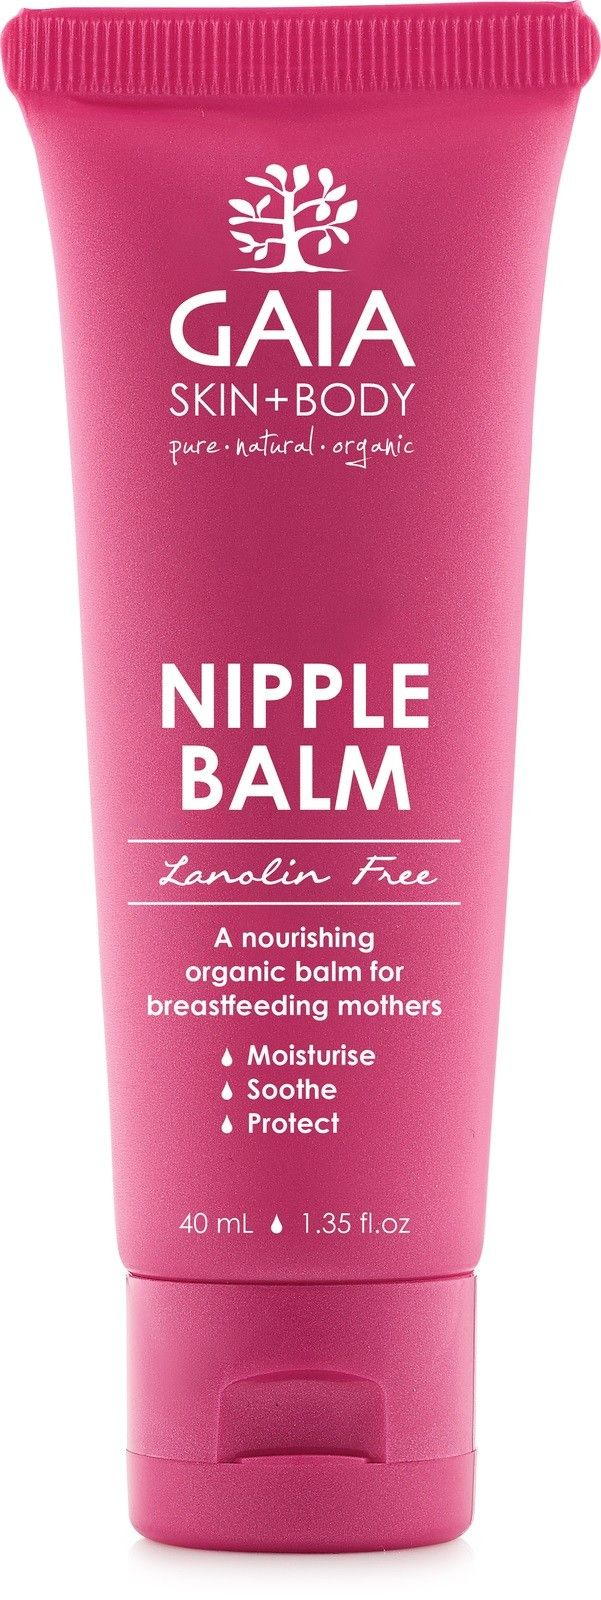 Buy Gaia Nipple Balm- 40ml by Gaia online and browse other products in our range. Baby & Toddler Town Australia's Largest Baby Superstore. Buy instore or online with fast delivery throughout Australia.